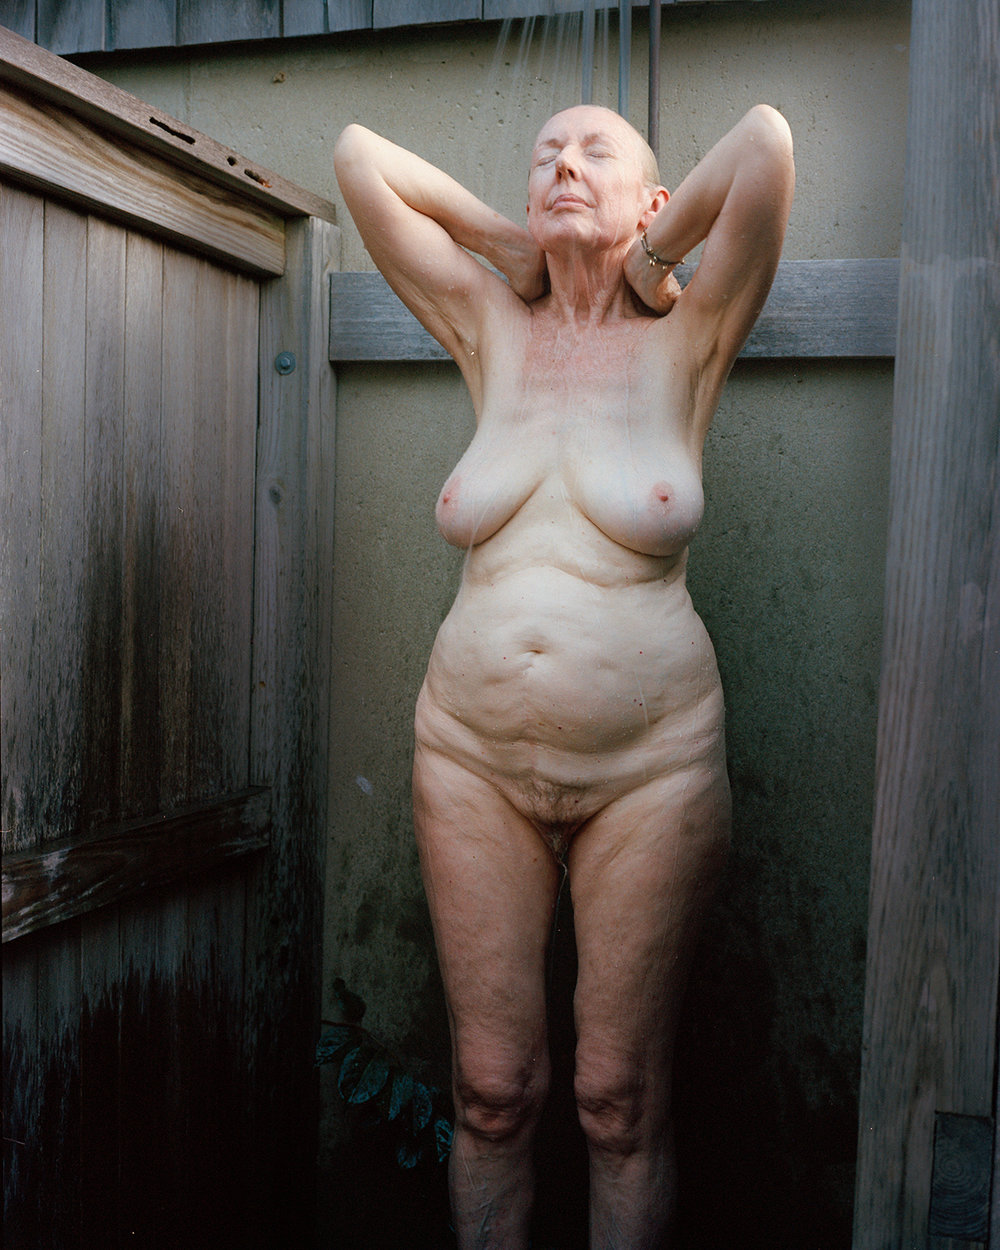 Jane in Shower